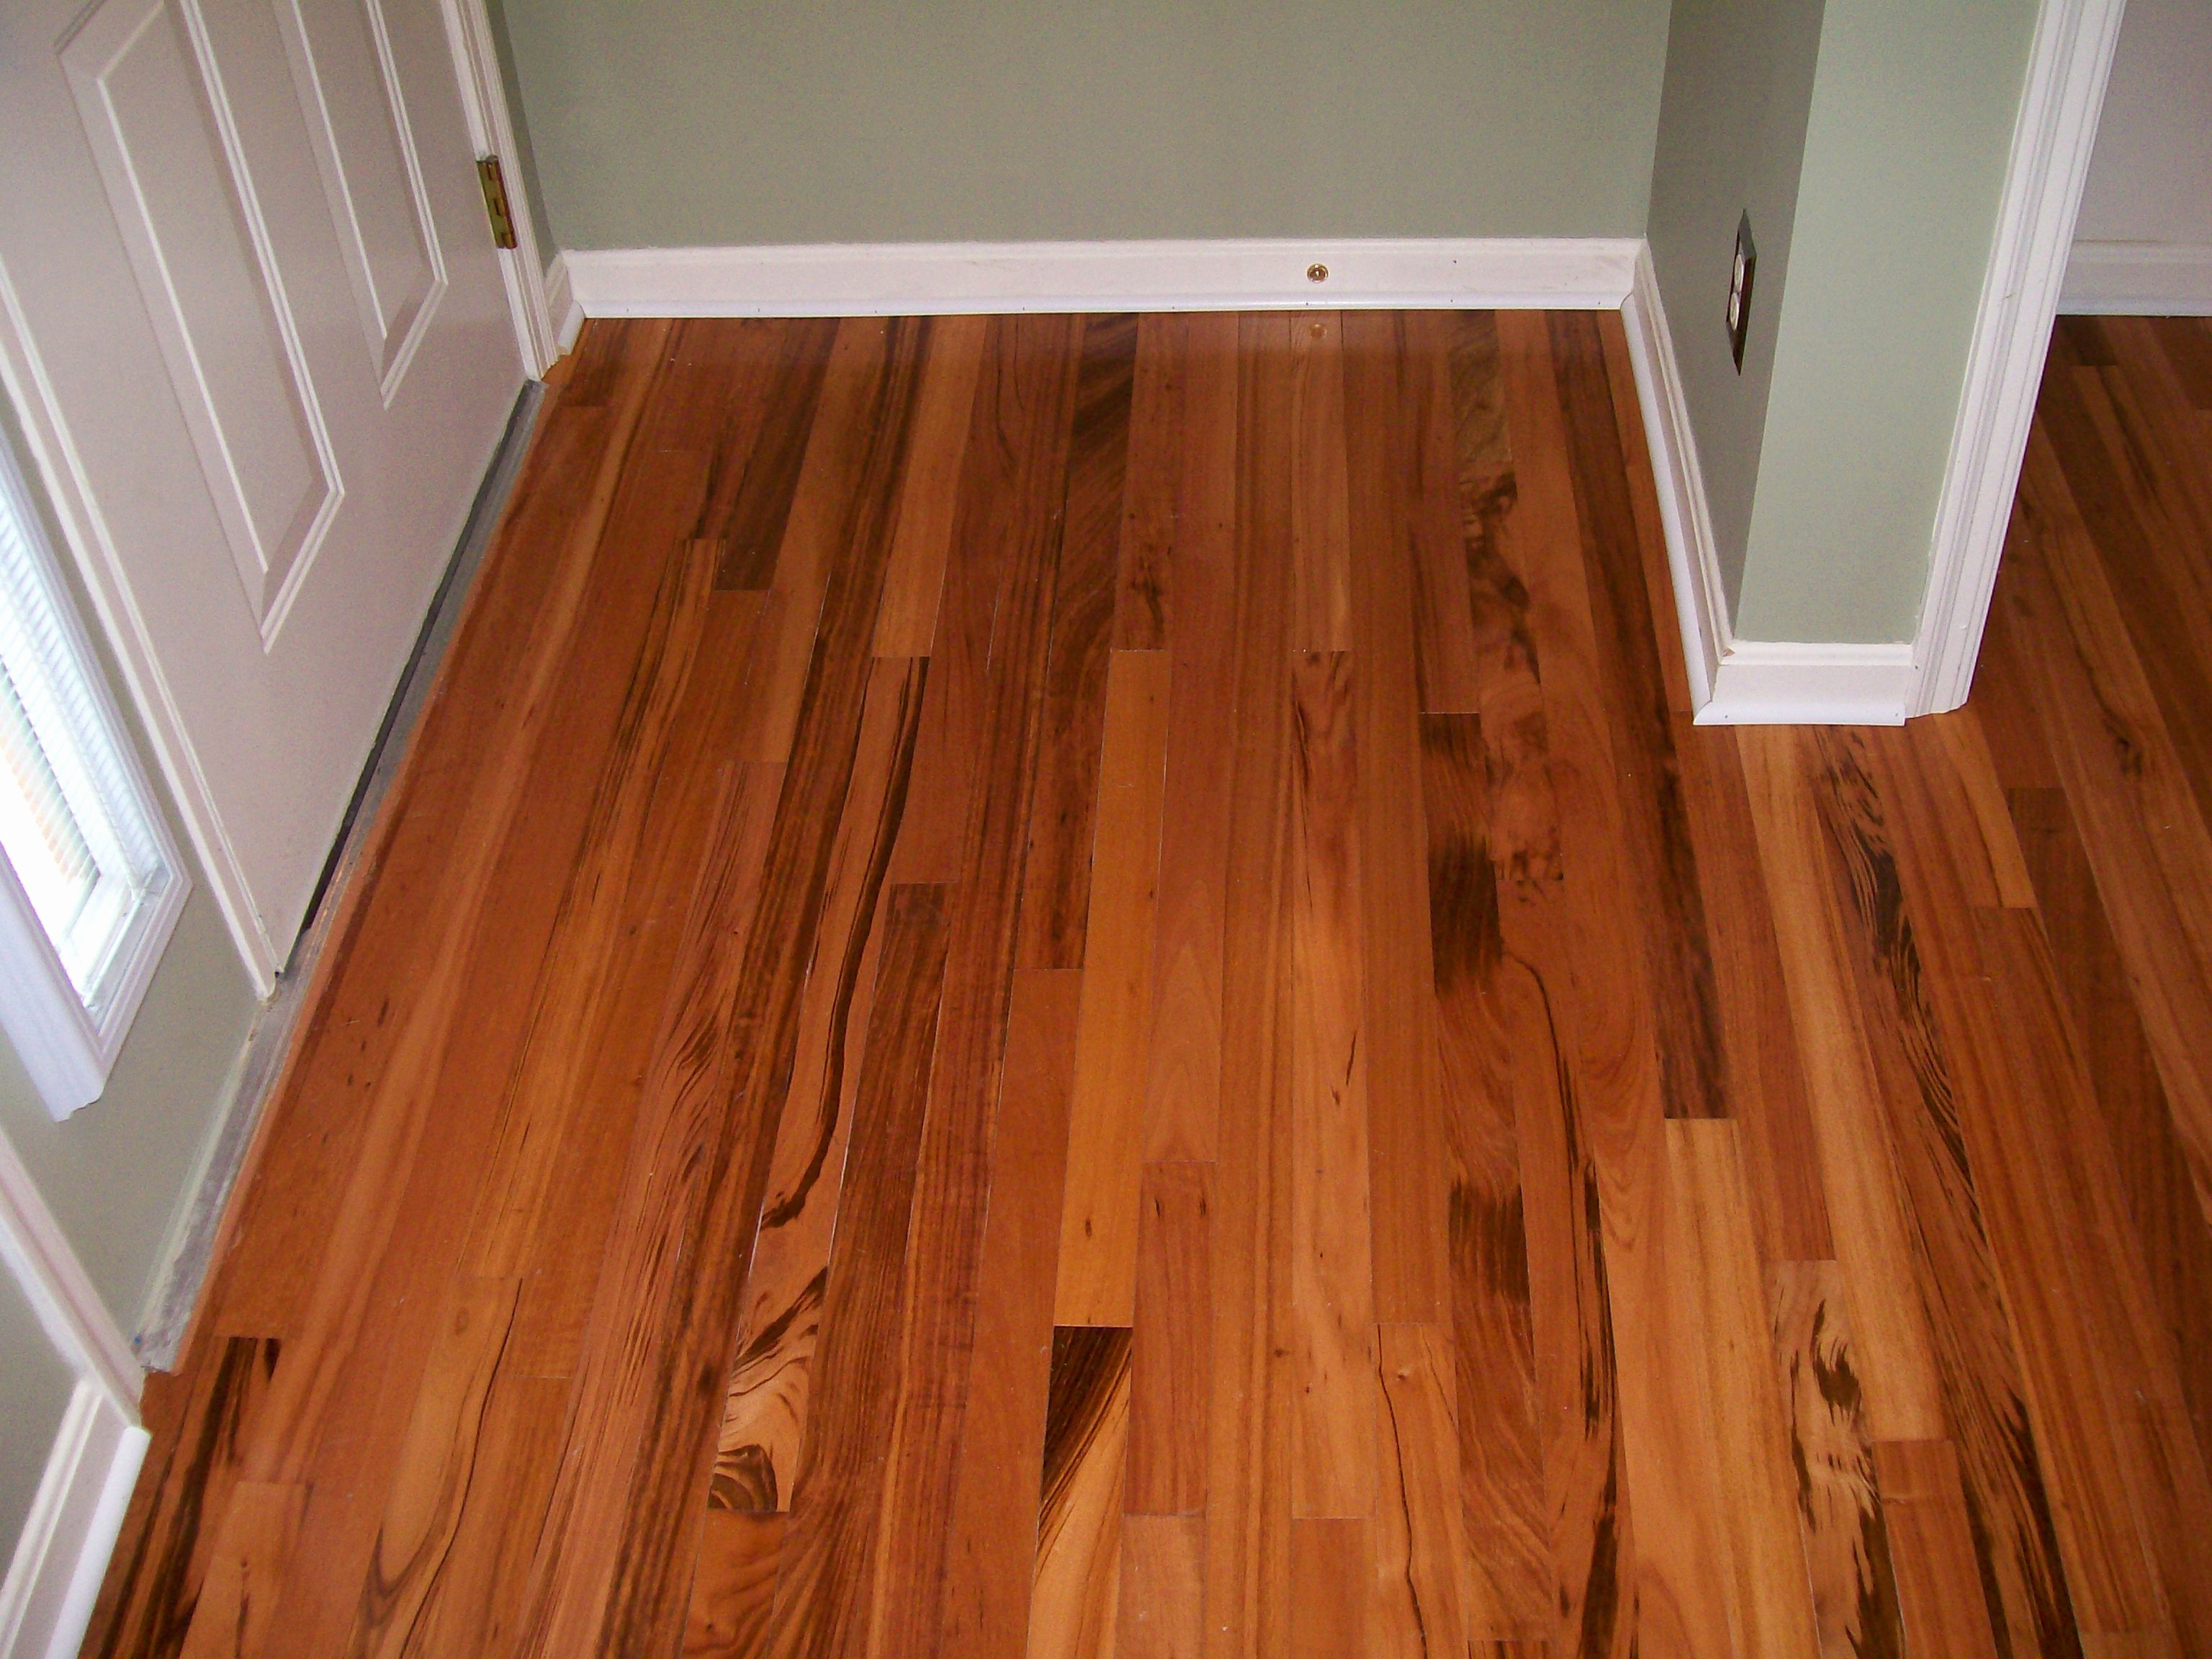 Hardwood Floor Refinishing Per Square Foot Of 17 New Cost Of Hardwood Floor Installation Pics Dizpos Com Intended for Cost Of Hardwood Floor Installation New 50 Fresh Estimated Cost Installing Hardwood Floors 50 Photos Of